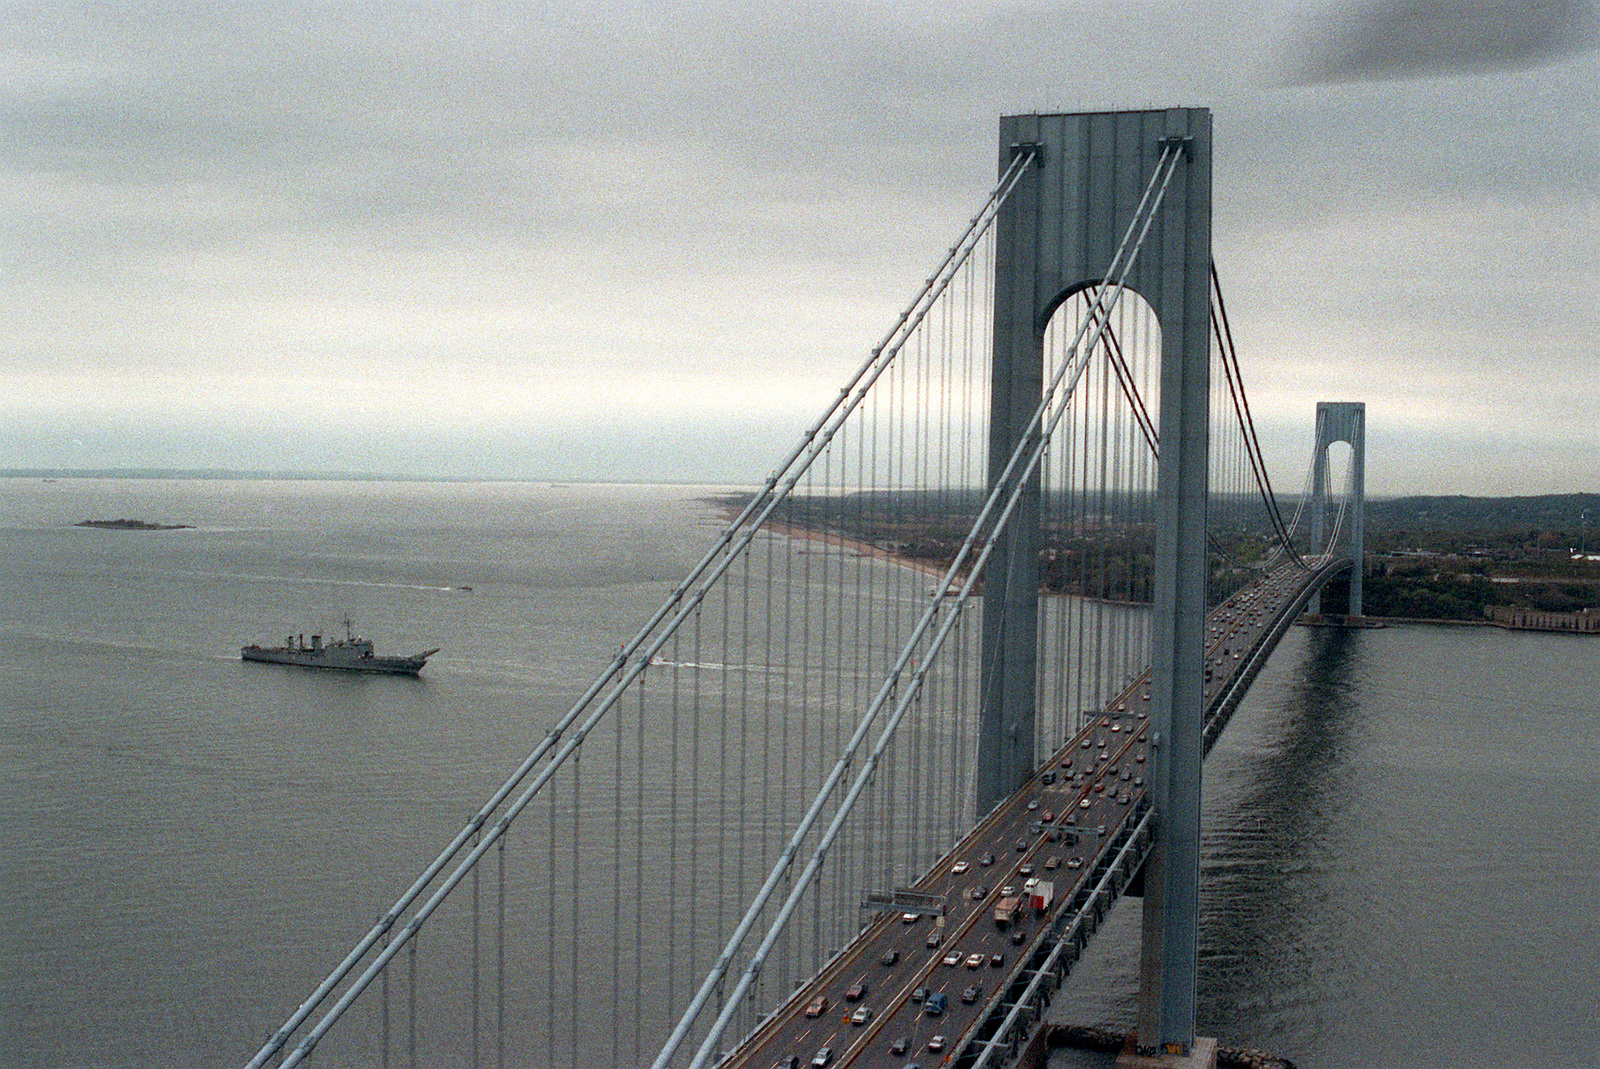 The tank landing ship USS FAIRFAX COUNTY (LST 1193) approaches the Verrazano Narrows Bridge as the vessel arrives for Navy Fleet Week activities